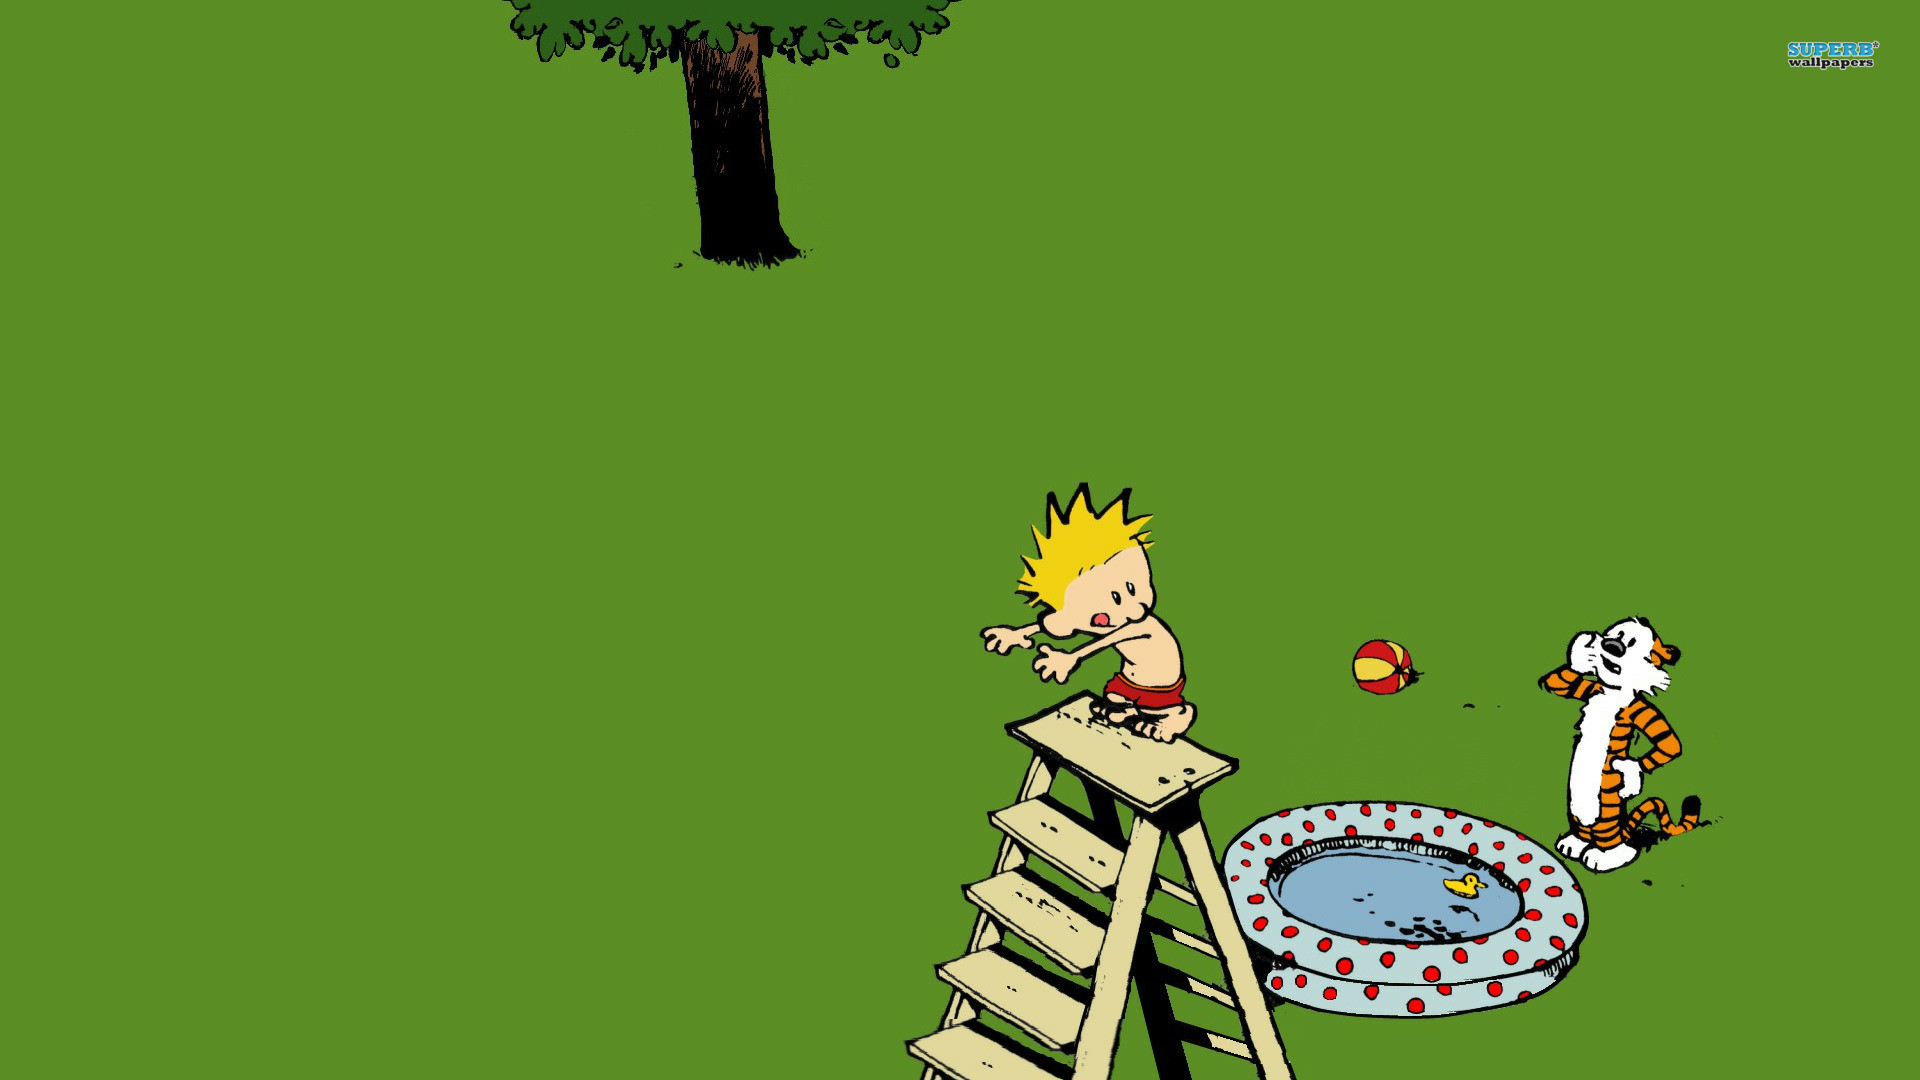 Explore Calvin And Hobbes Wallpaper and more!